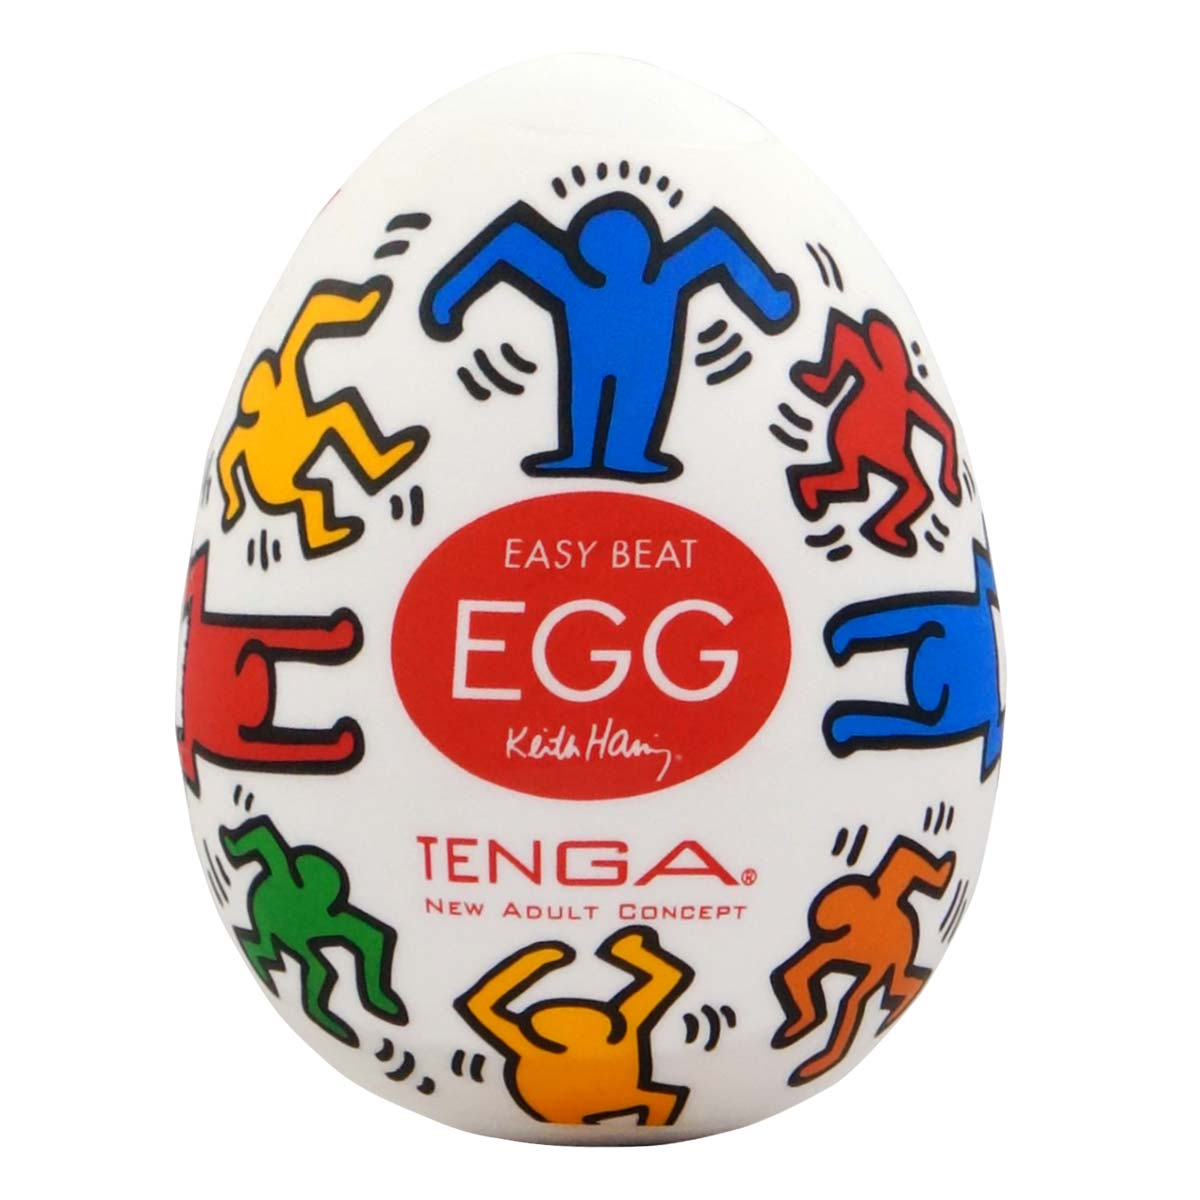 TENGA × Keith Haring EGG DANCE